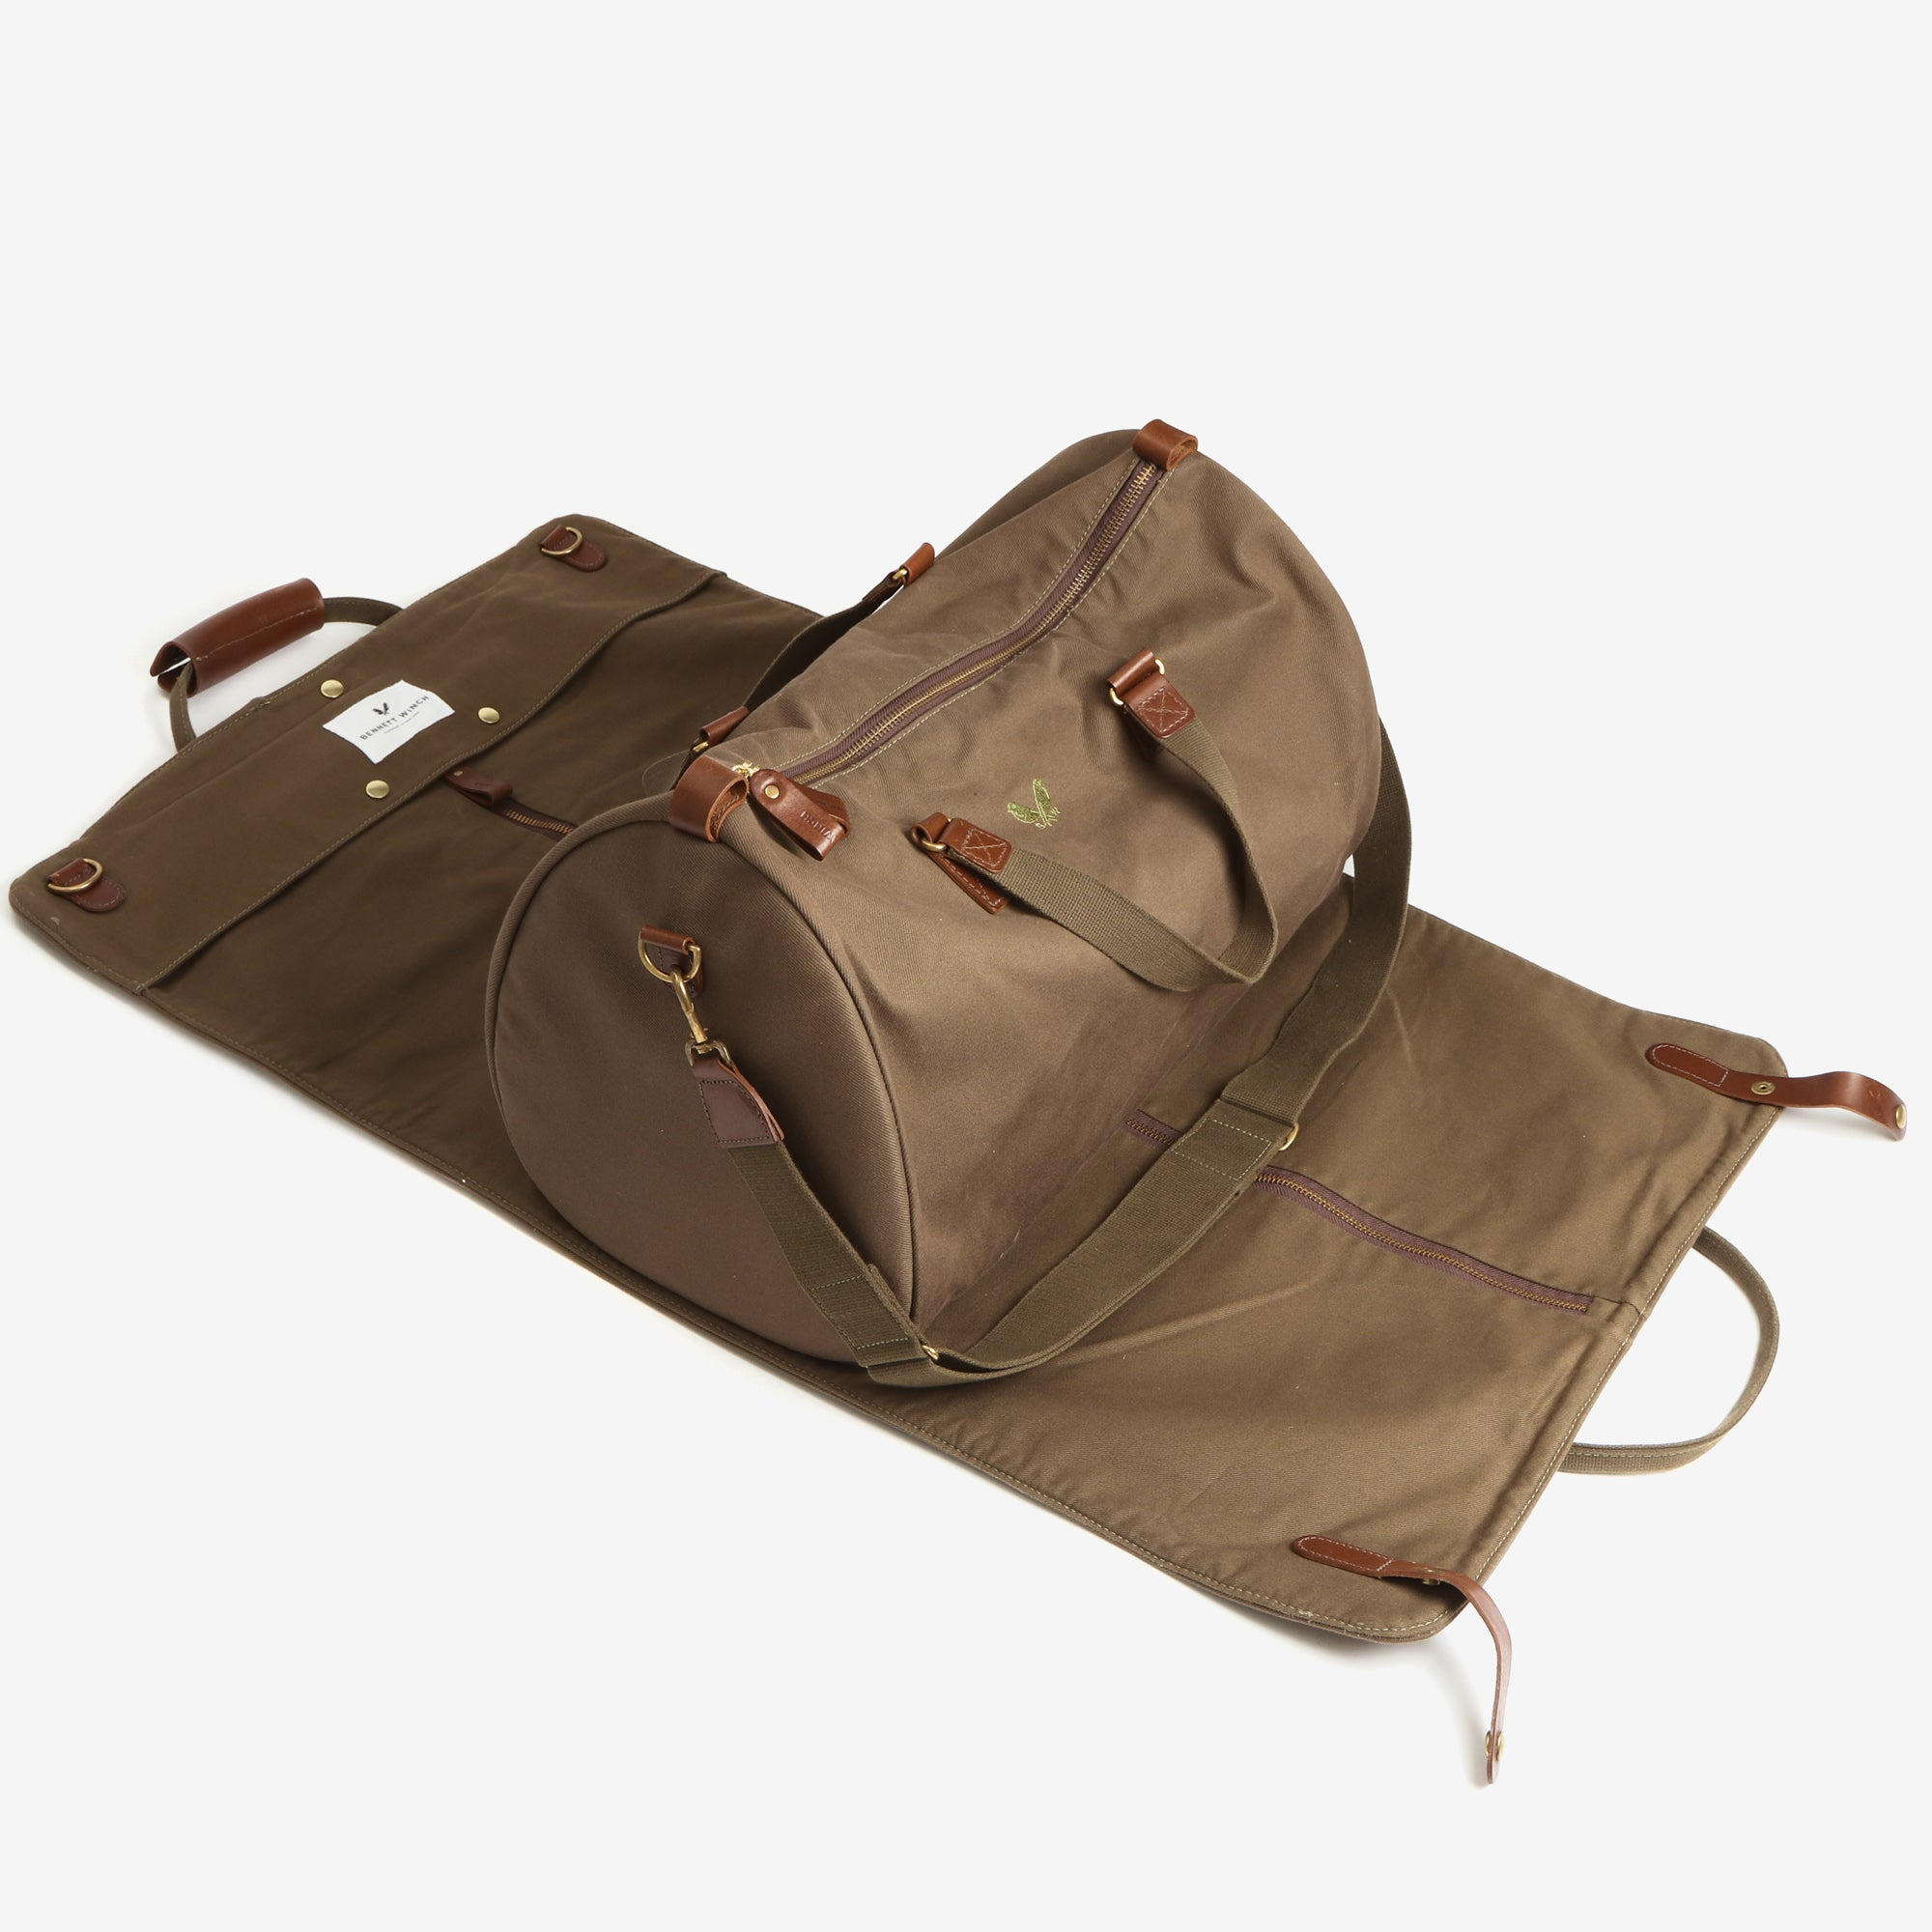 The S.C Holdall